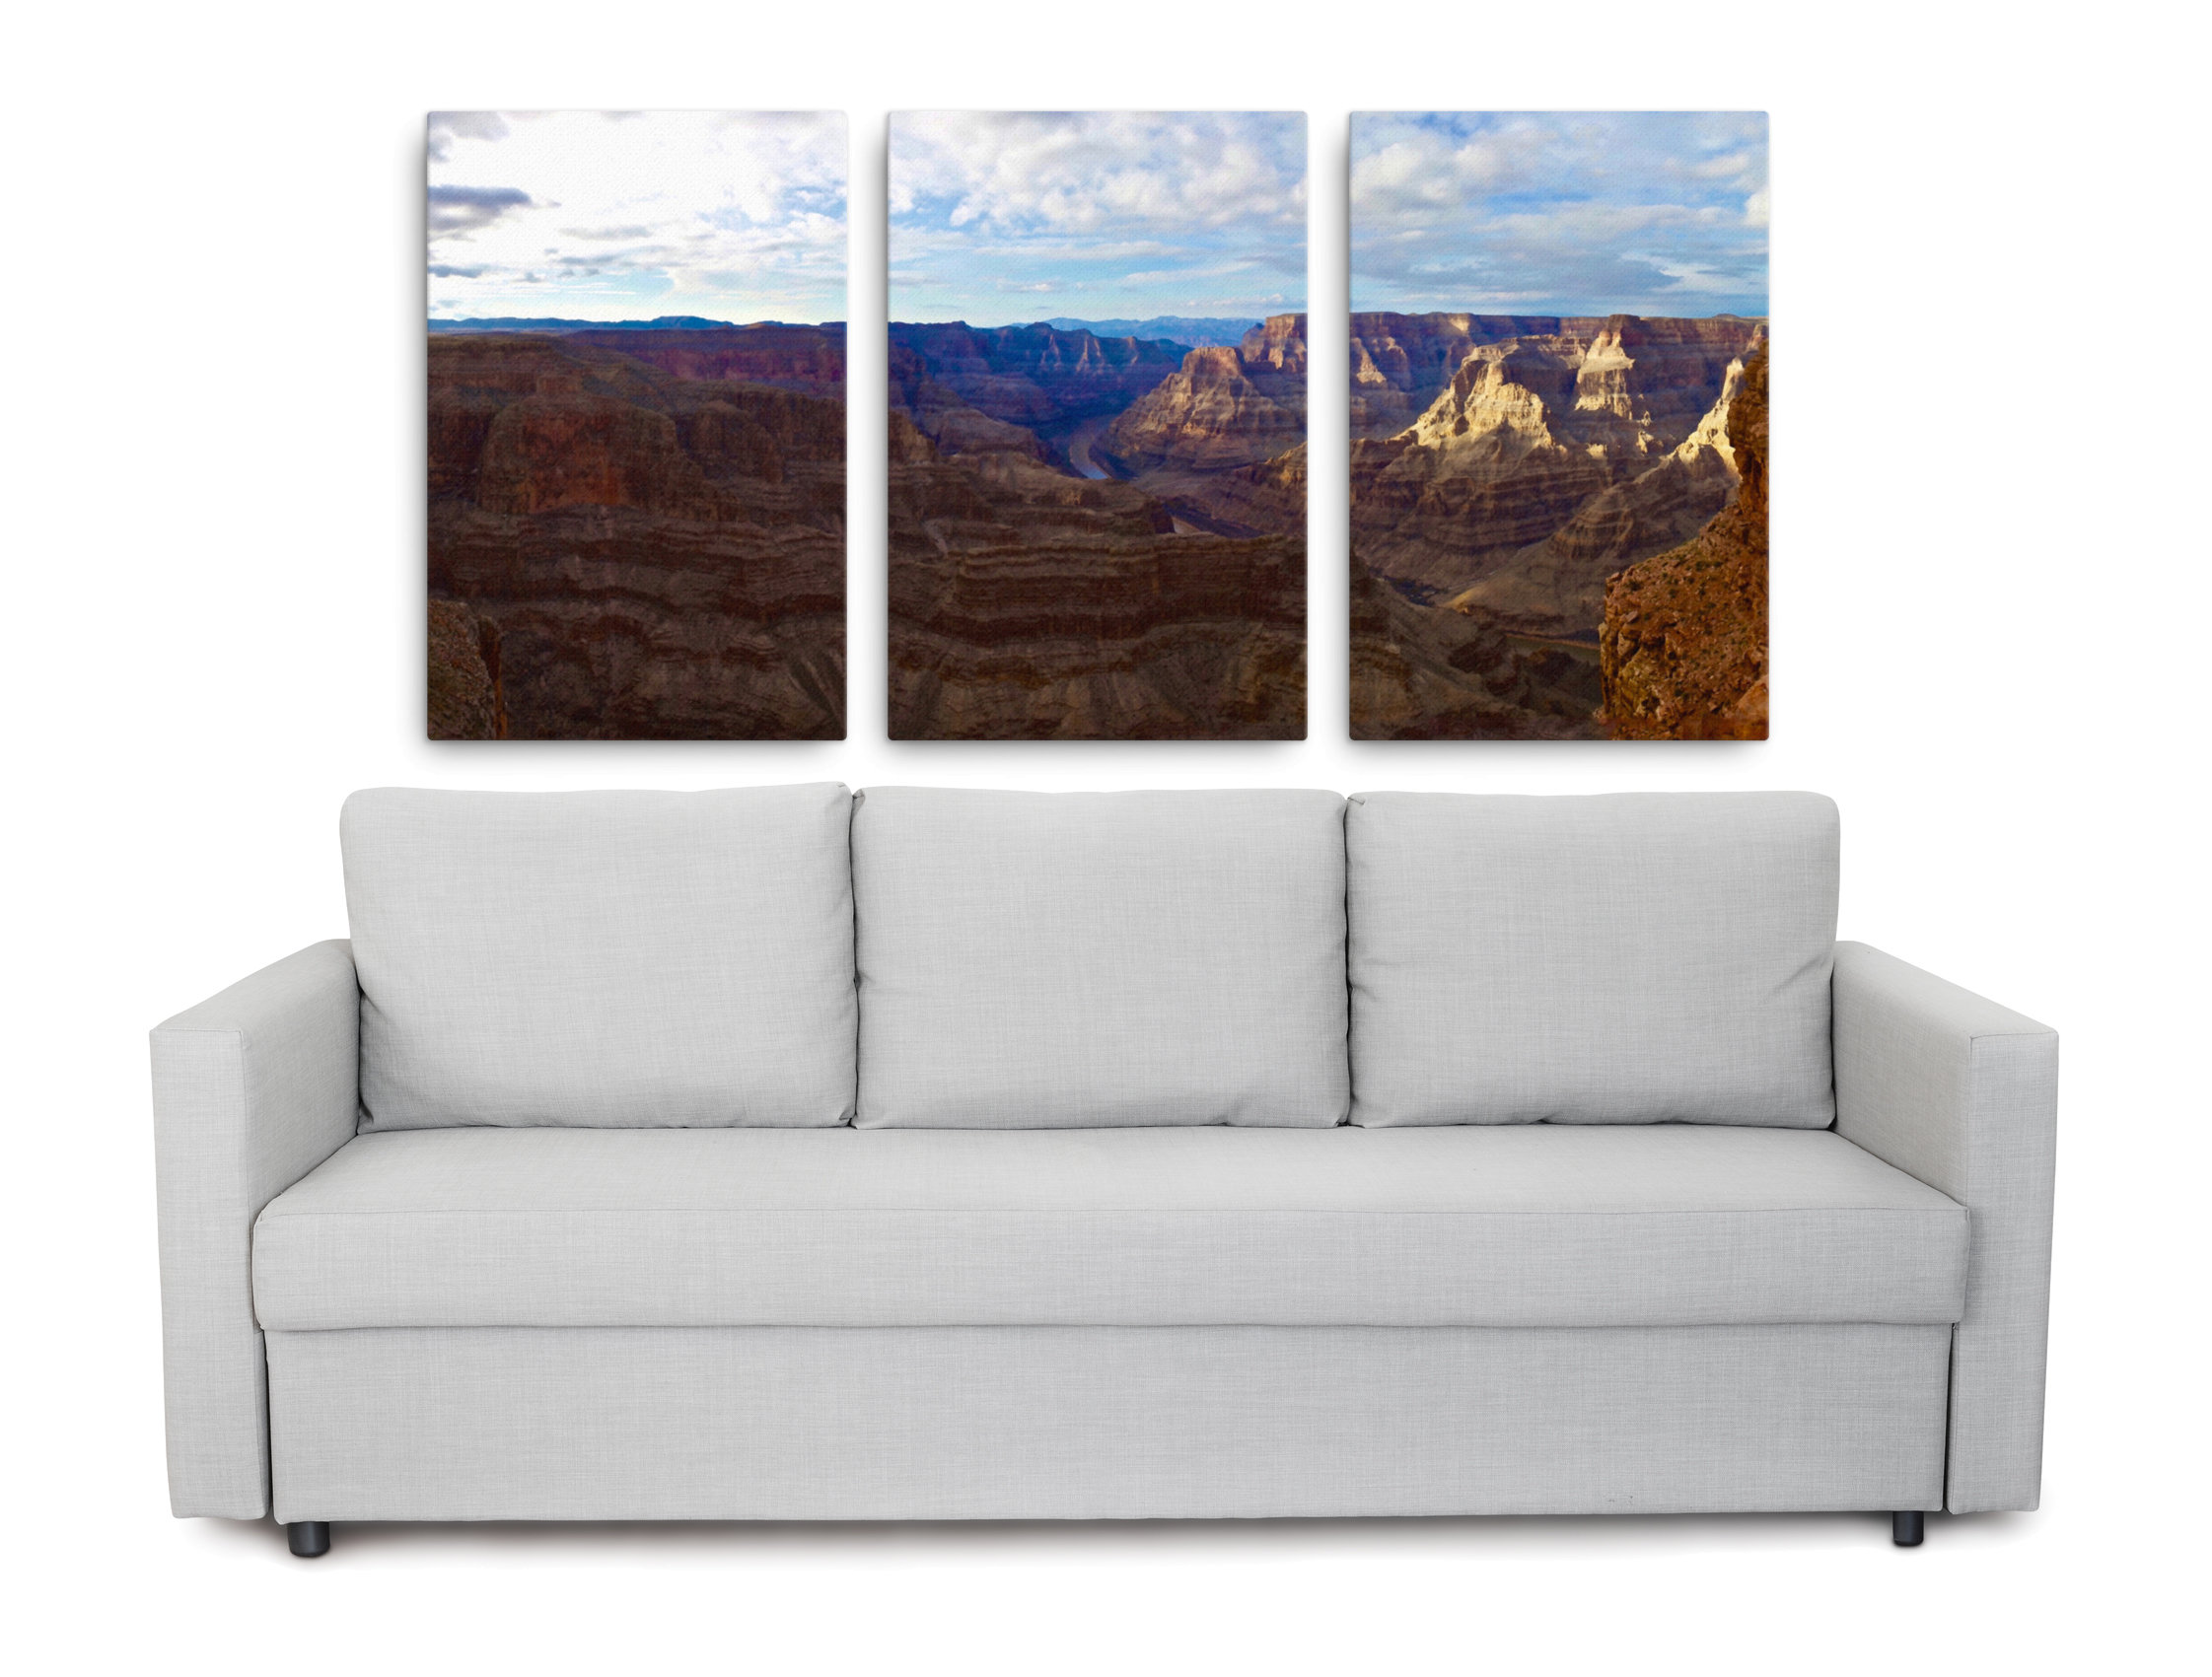 Product picture of our Grand Canyon photos for sale